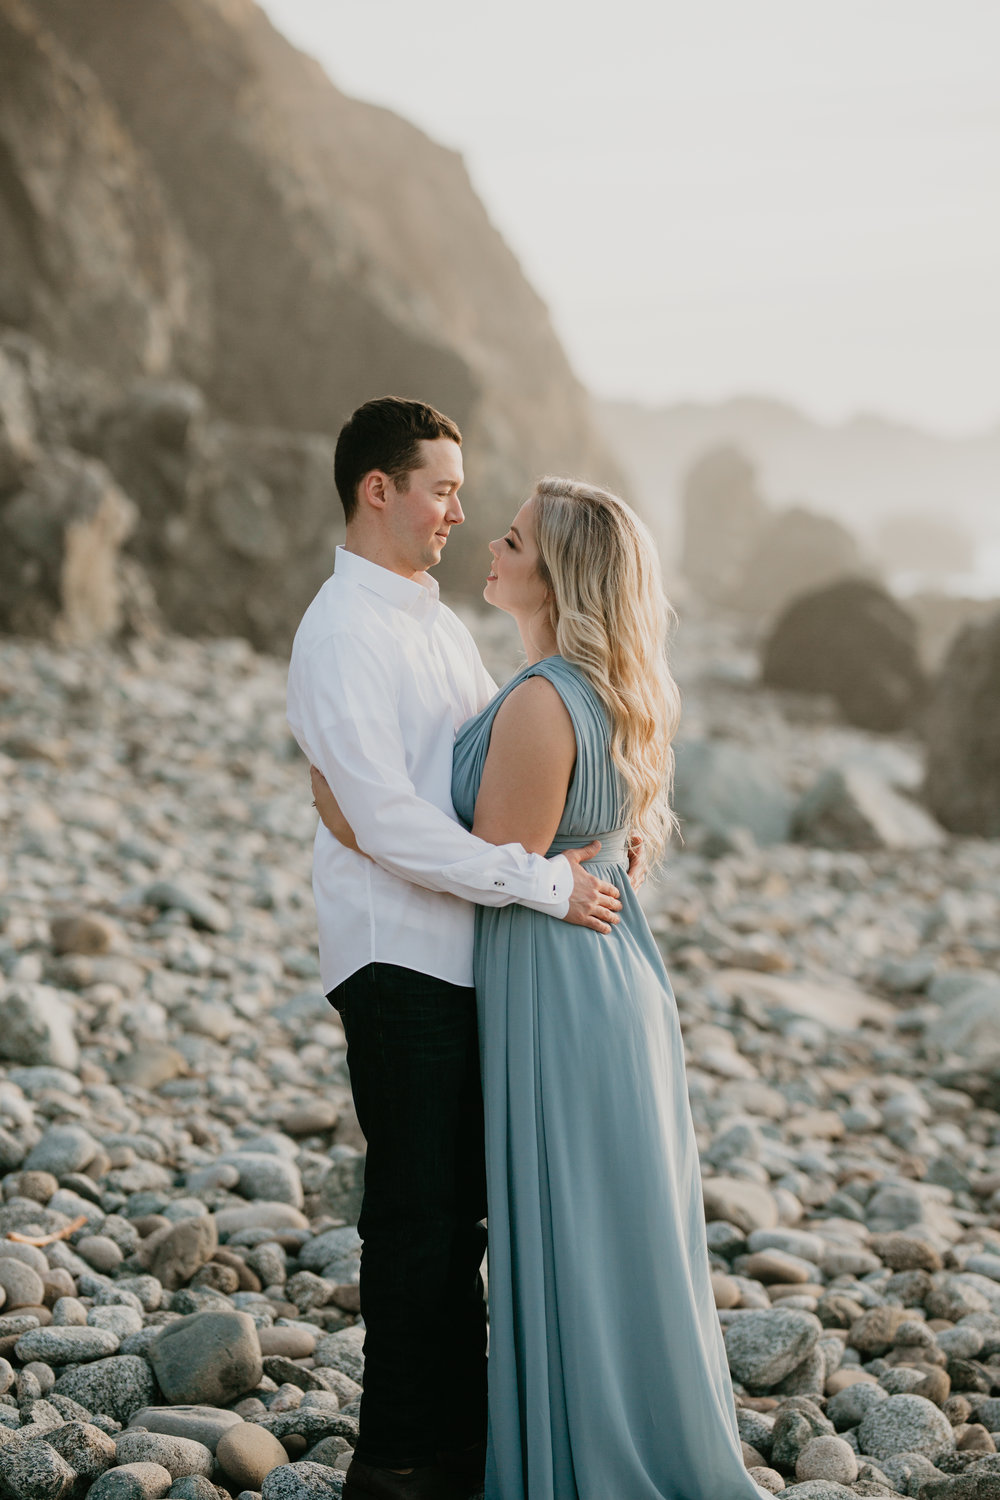 Nicole-Daacke-Photography-big-sur-garrapatta-state-park-adventurous-engagement-session-bixy-bridge-elopement-big-sur-wedding-photographer-monterey-elopement-photographer-california-golden-sunset-coast-photos-30.jpg